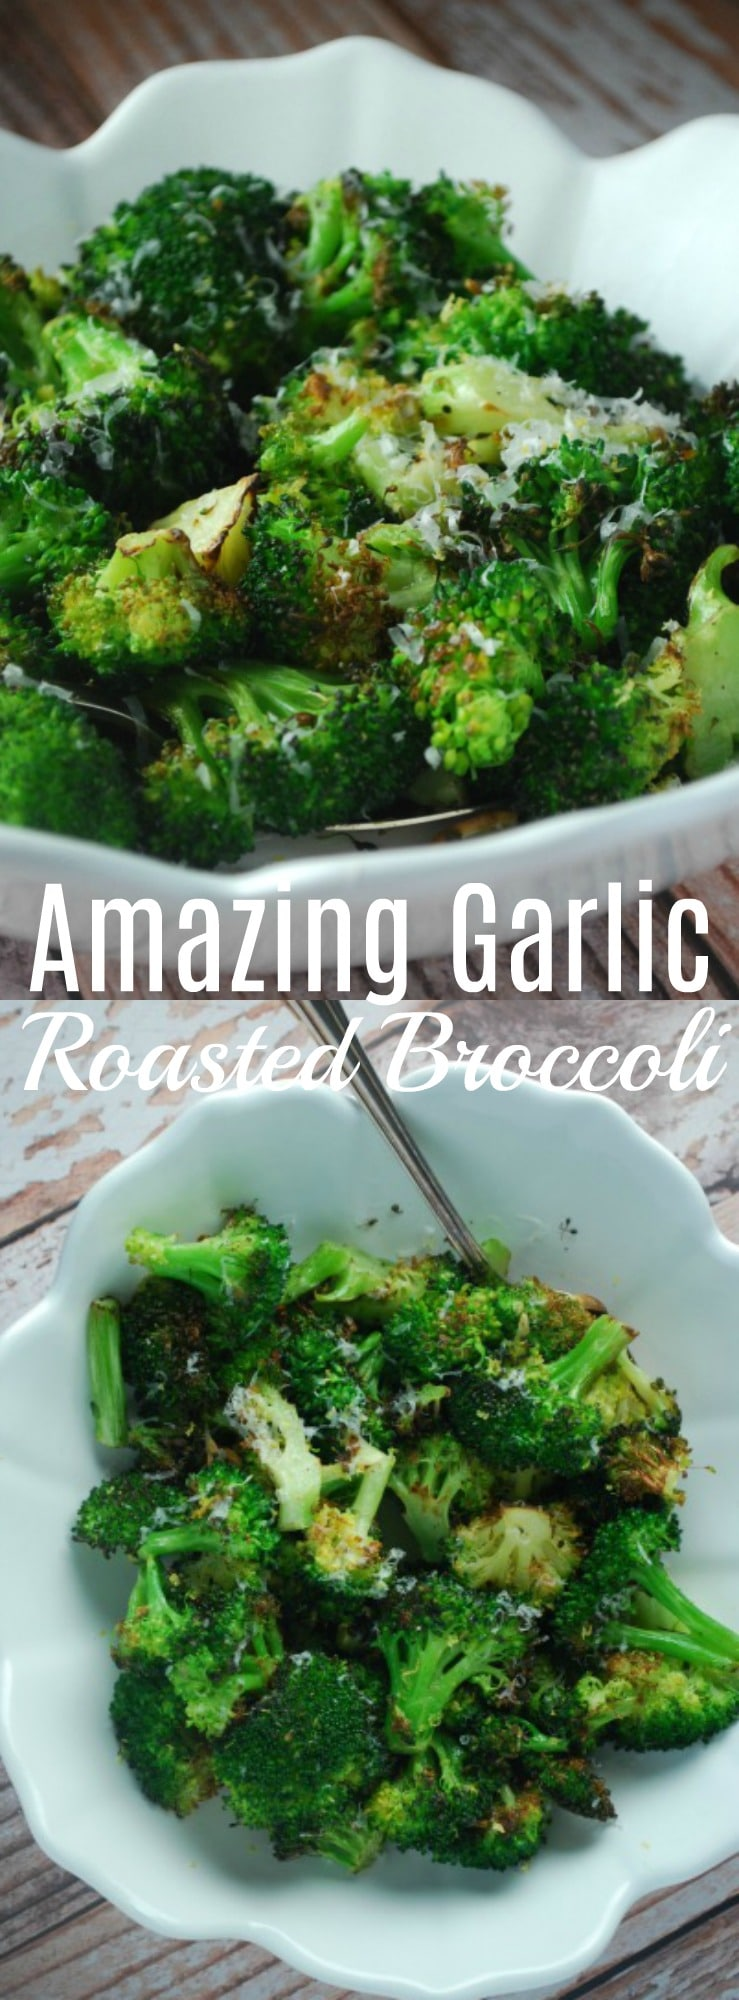 This simple roasted broccoli makes a fantastic and easy side dish that your family will love! Pairs great with everything! Side Dish, Easy Side Recipe, Garlic Roasted Broccoli, Broccoli Recipe, Healthy Side Dish, Family Friendly, Kid Approved Broccoli